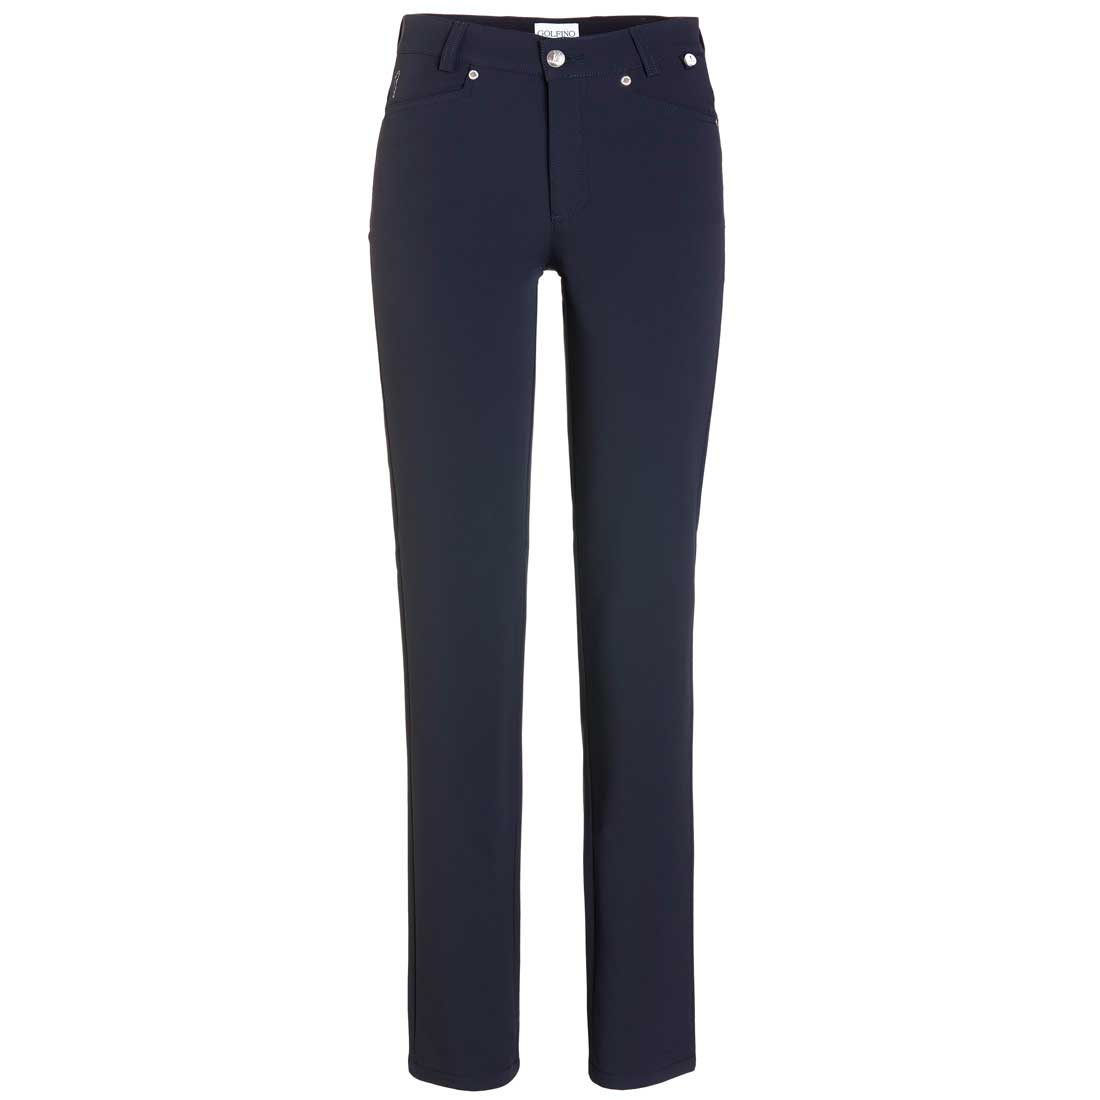 Comfortable ladies' golf trousers from Thermo Stretch in slim fit extra long